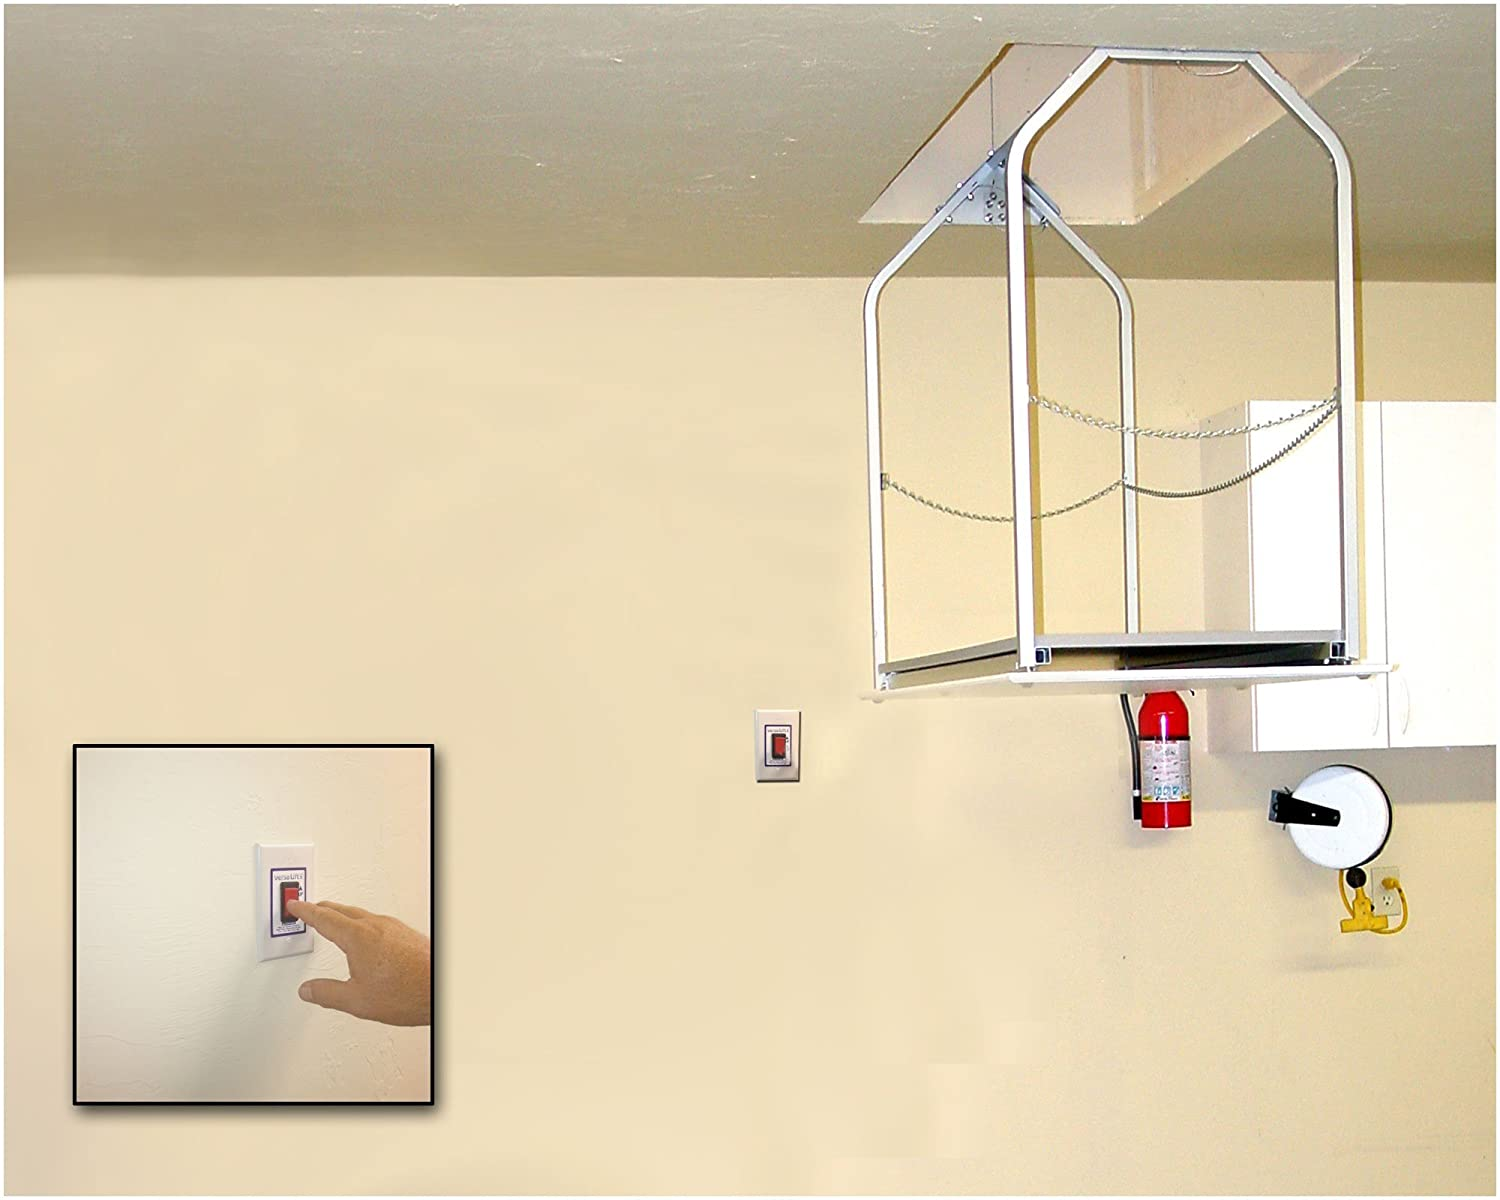 Versalift Attic Lift Model 24 M 8 11 Has 2 In Wall Switches Wiring Diagram Floor To Garage Height Load Capacity 200 Lbs Industrial